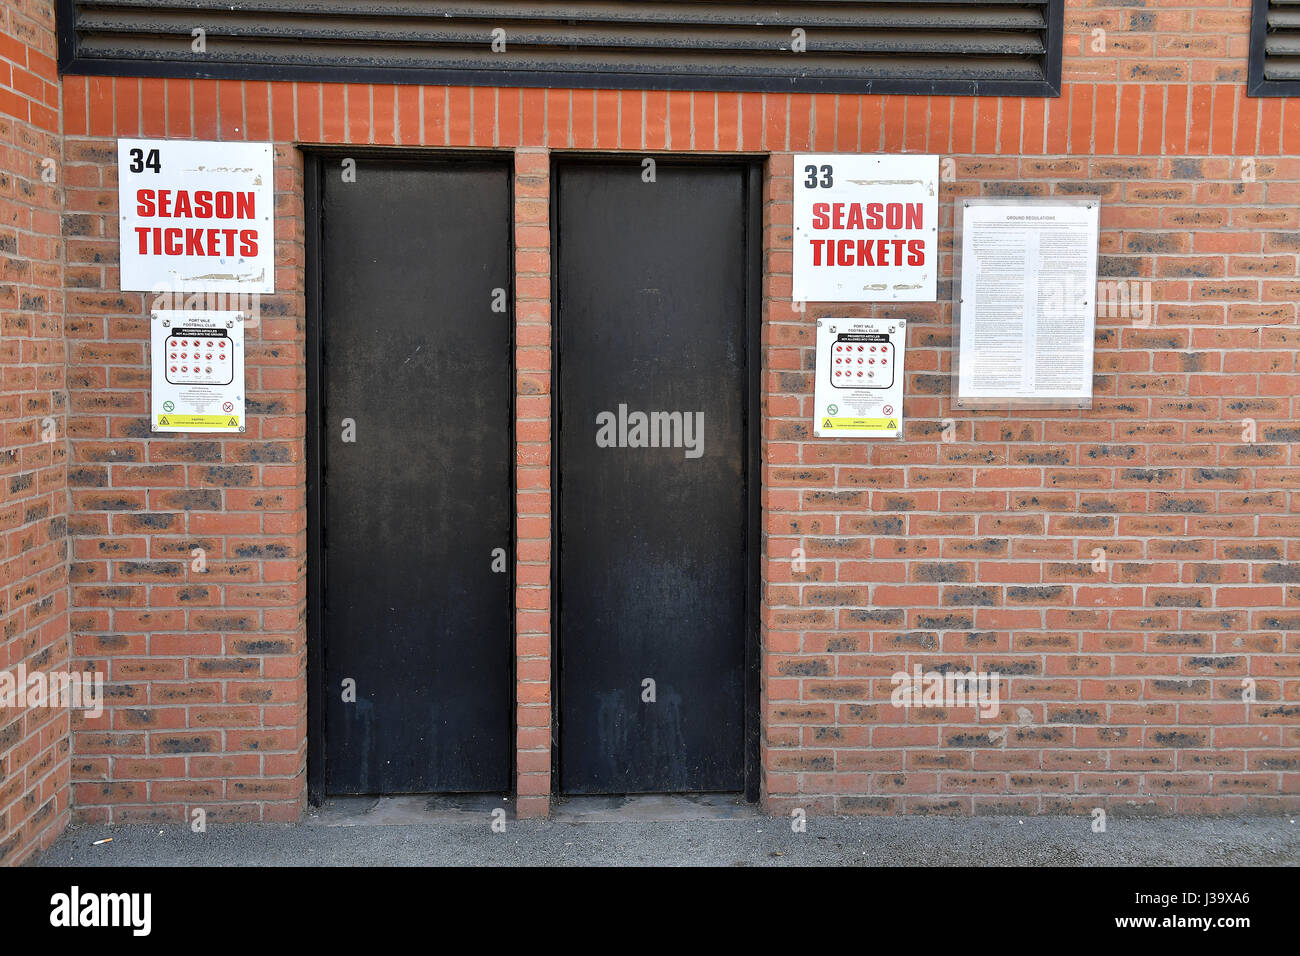 A general view of turnstile doors for season ticket holders at Vale Park, Stoke. - Stock Image